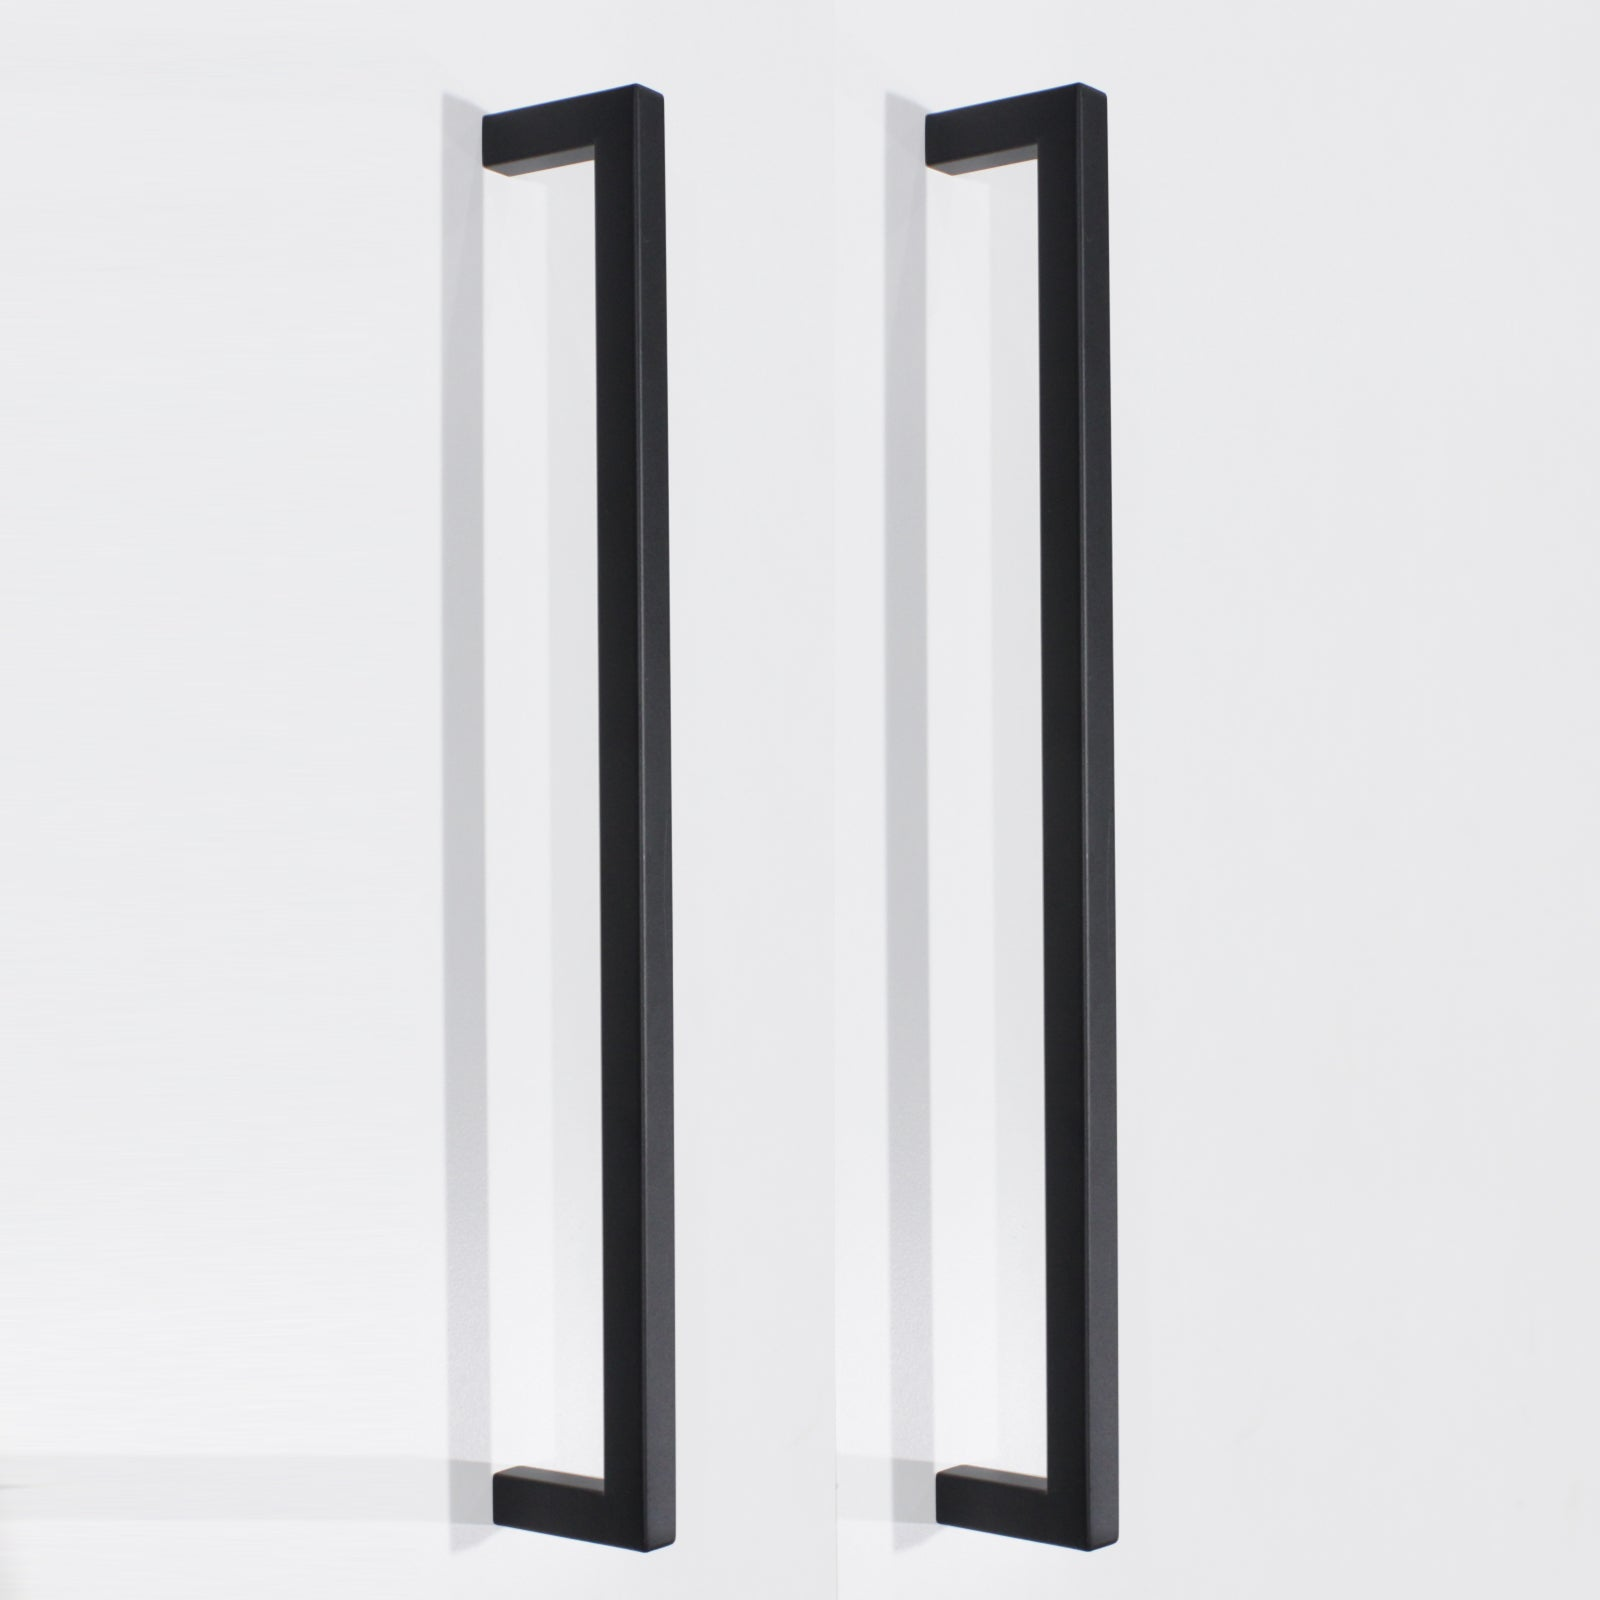 10mm Square Bar Kitchen Cupboard Handle Pulls Black Cabinet